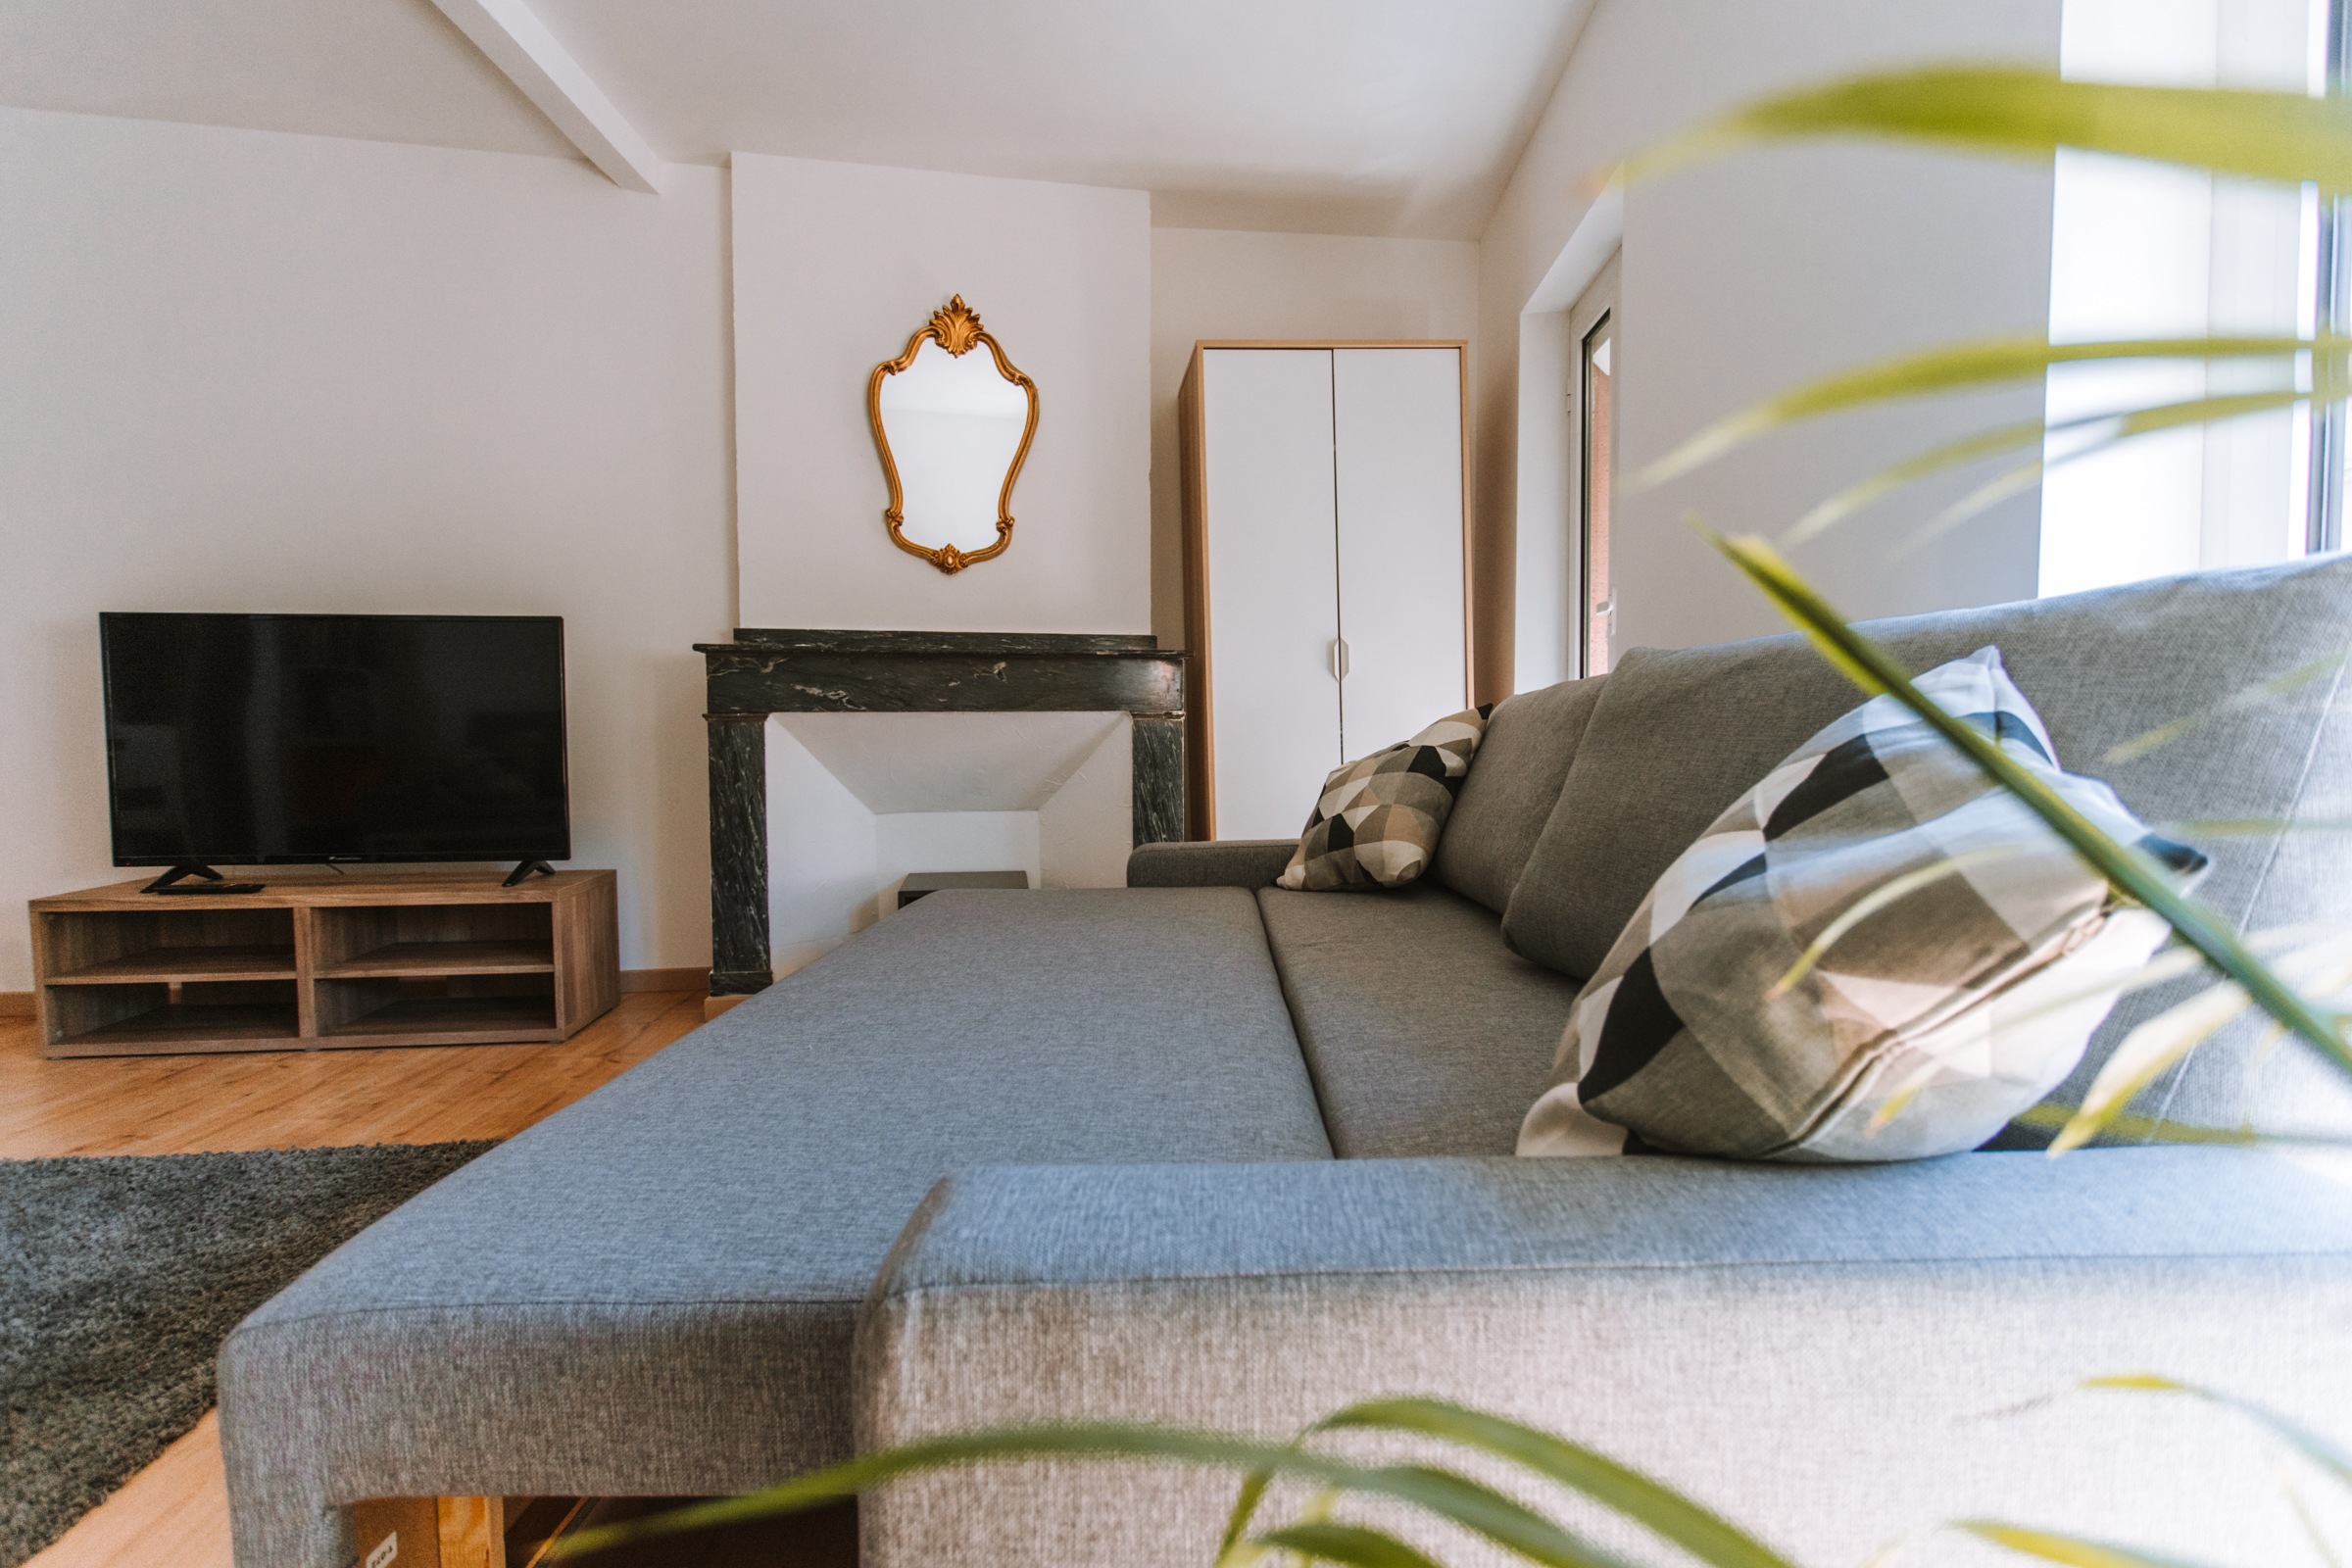 Geoffrey-Lucas-comissions-rent-home-toulouse-4.jpg